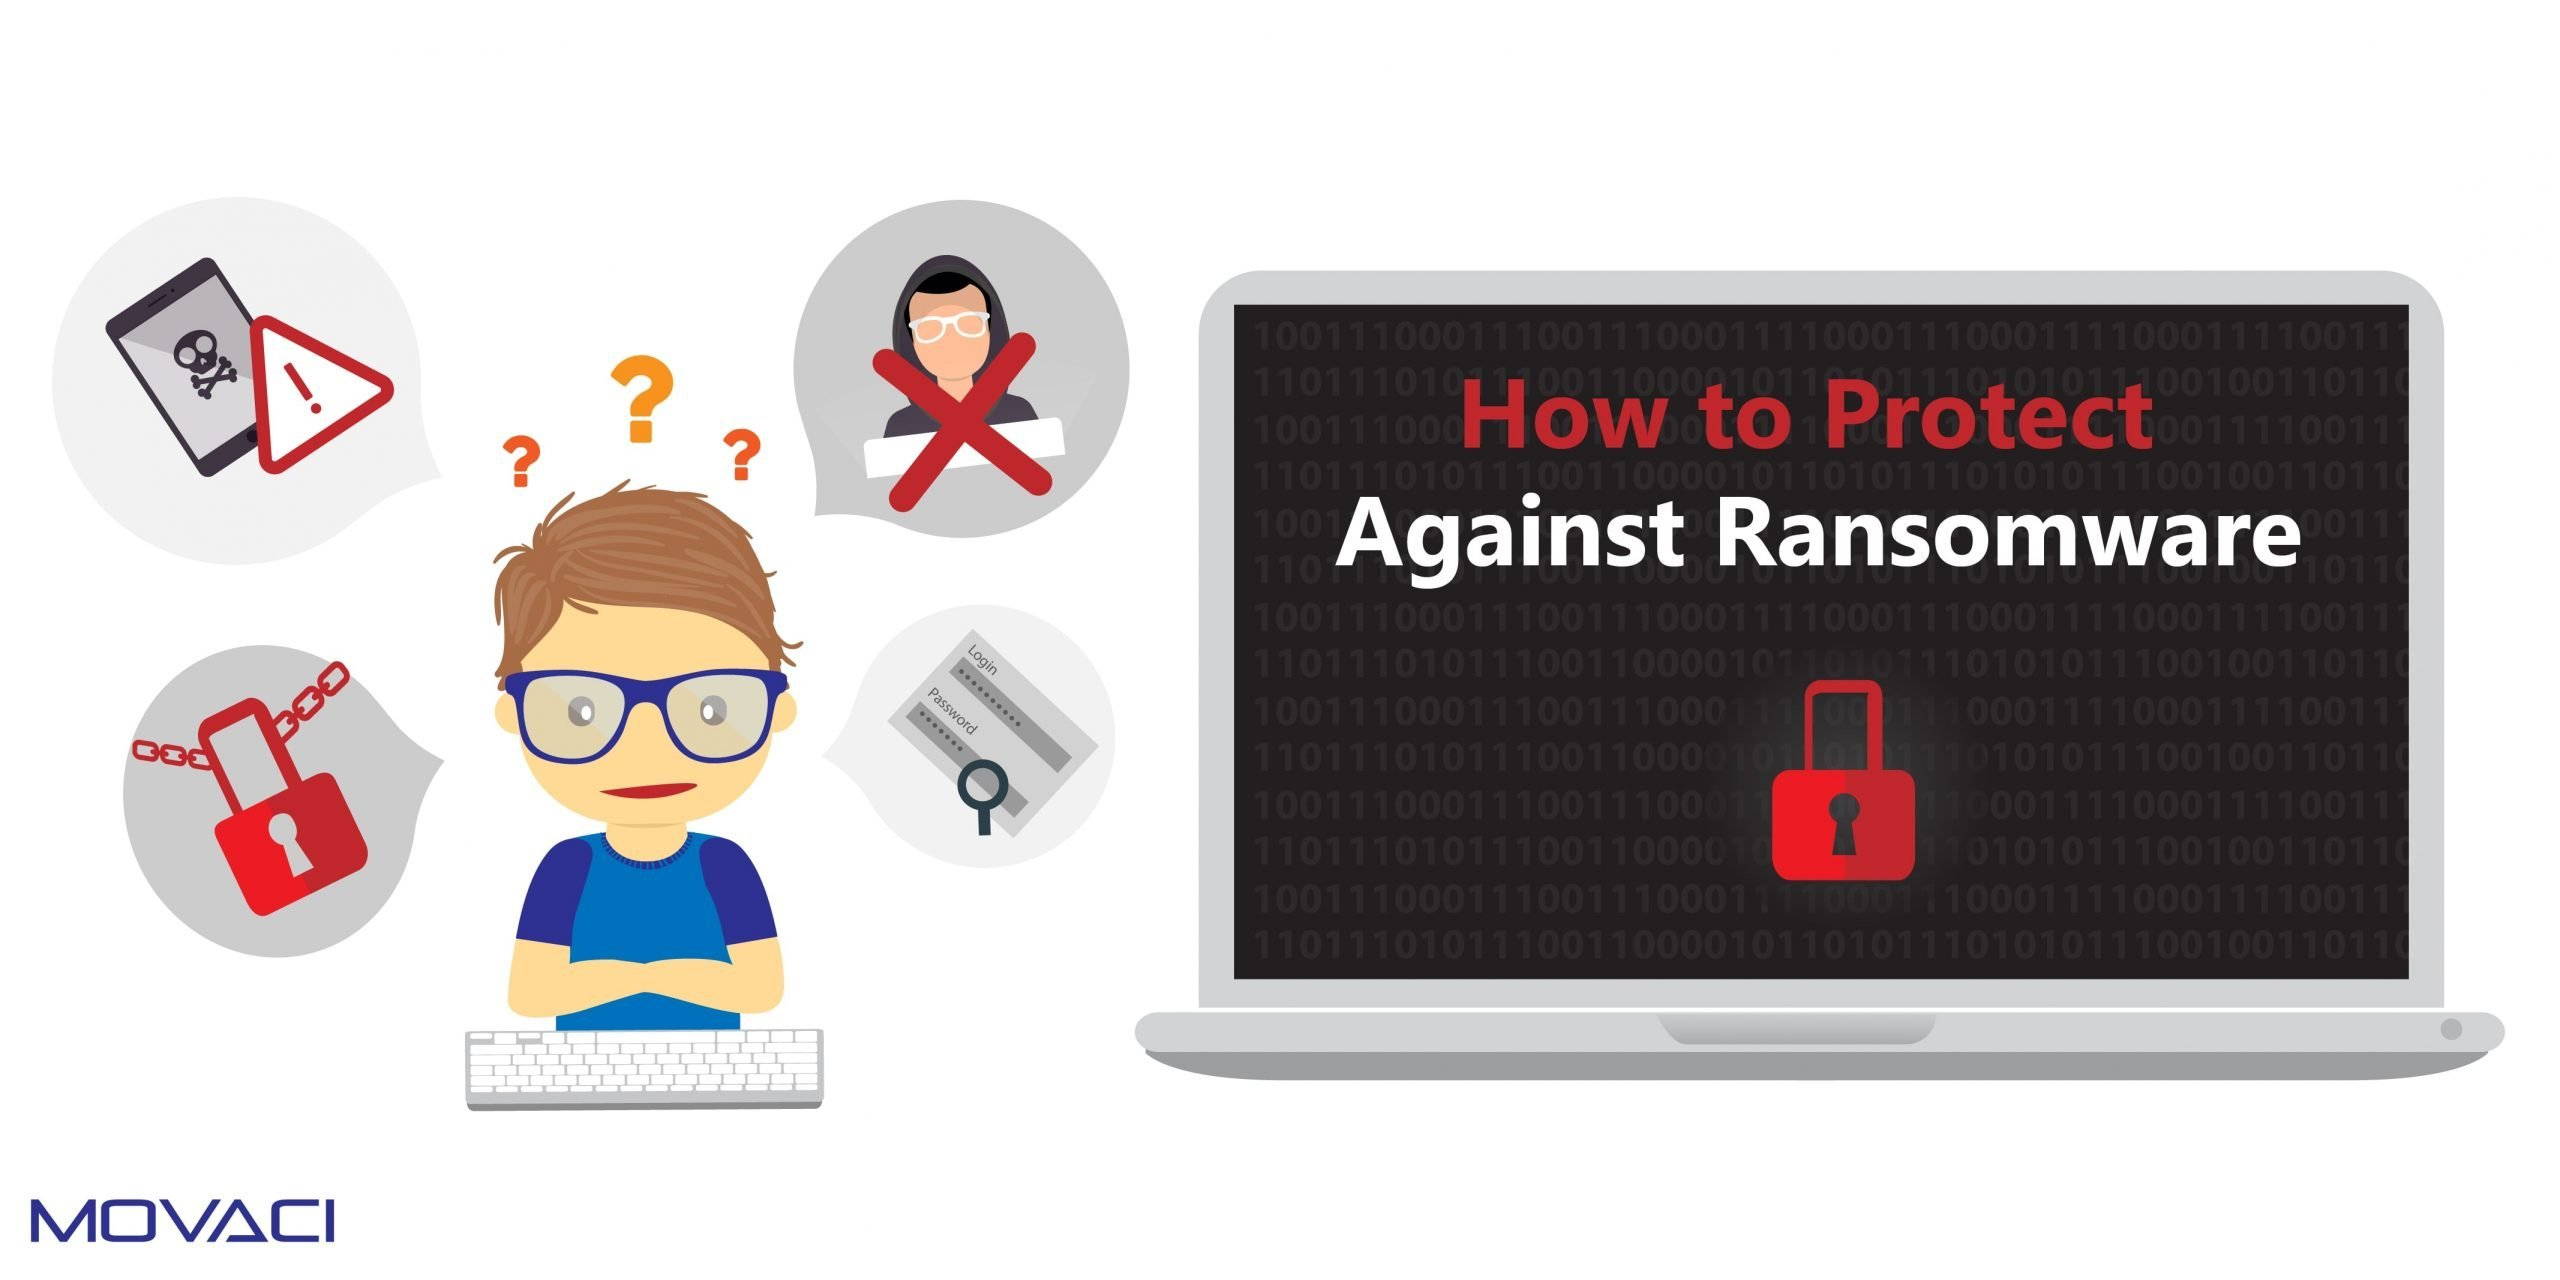 How to Protect Against Ransomware 1